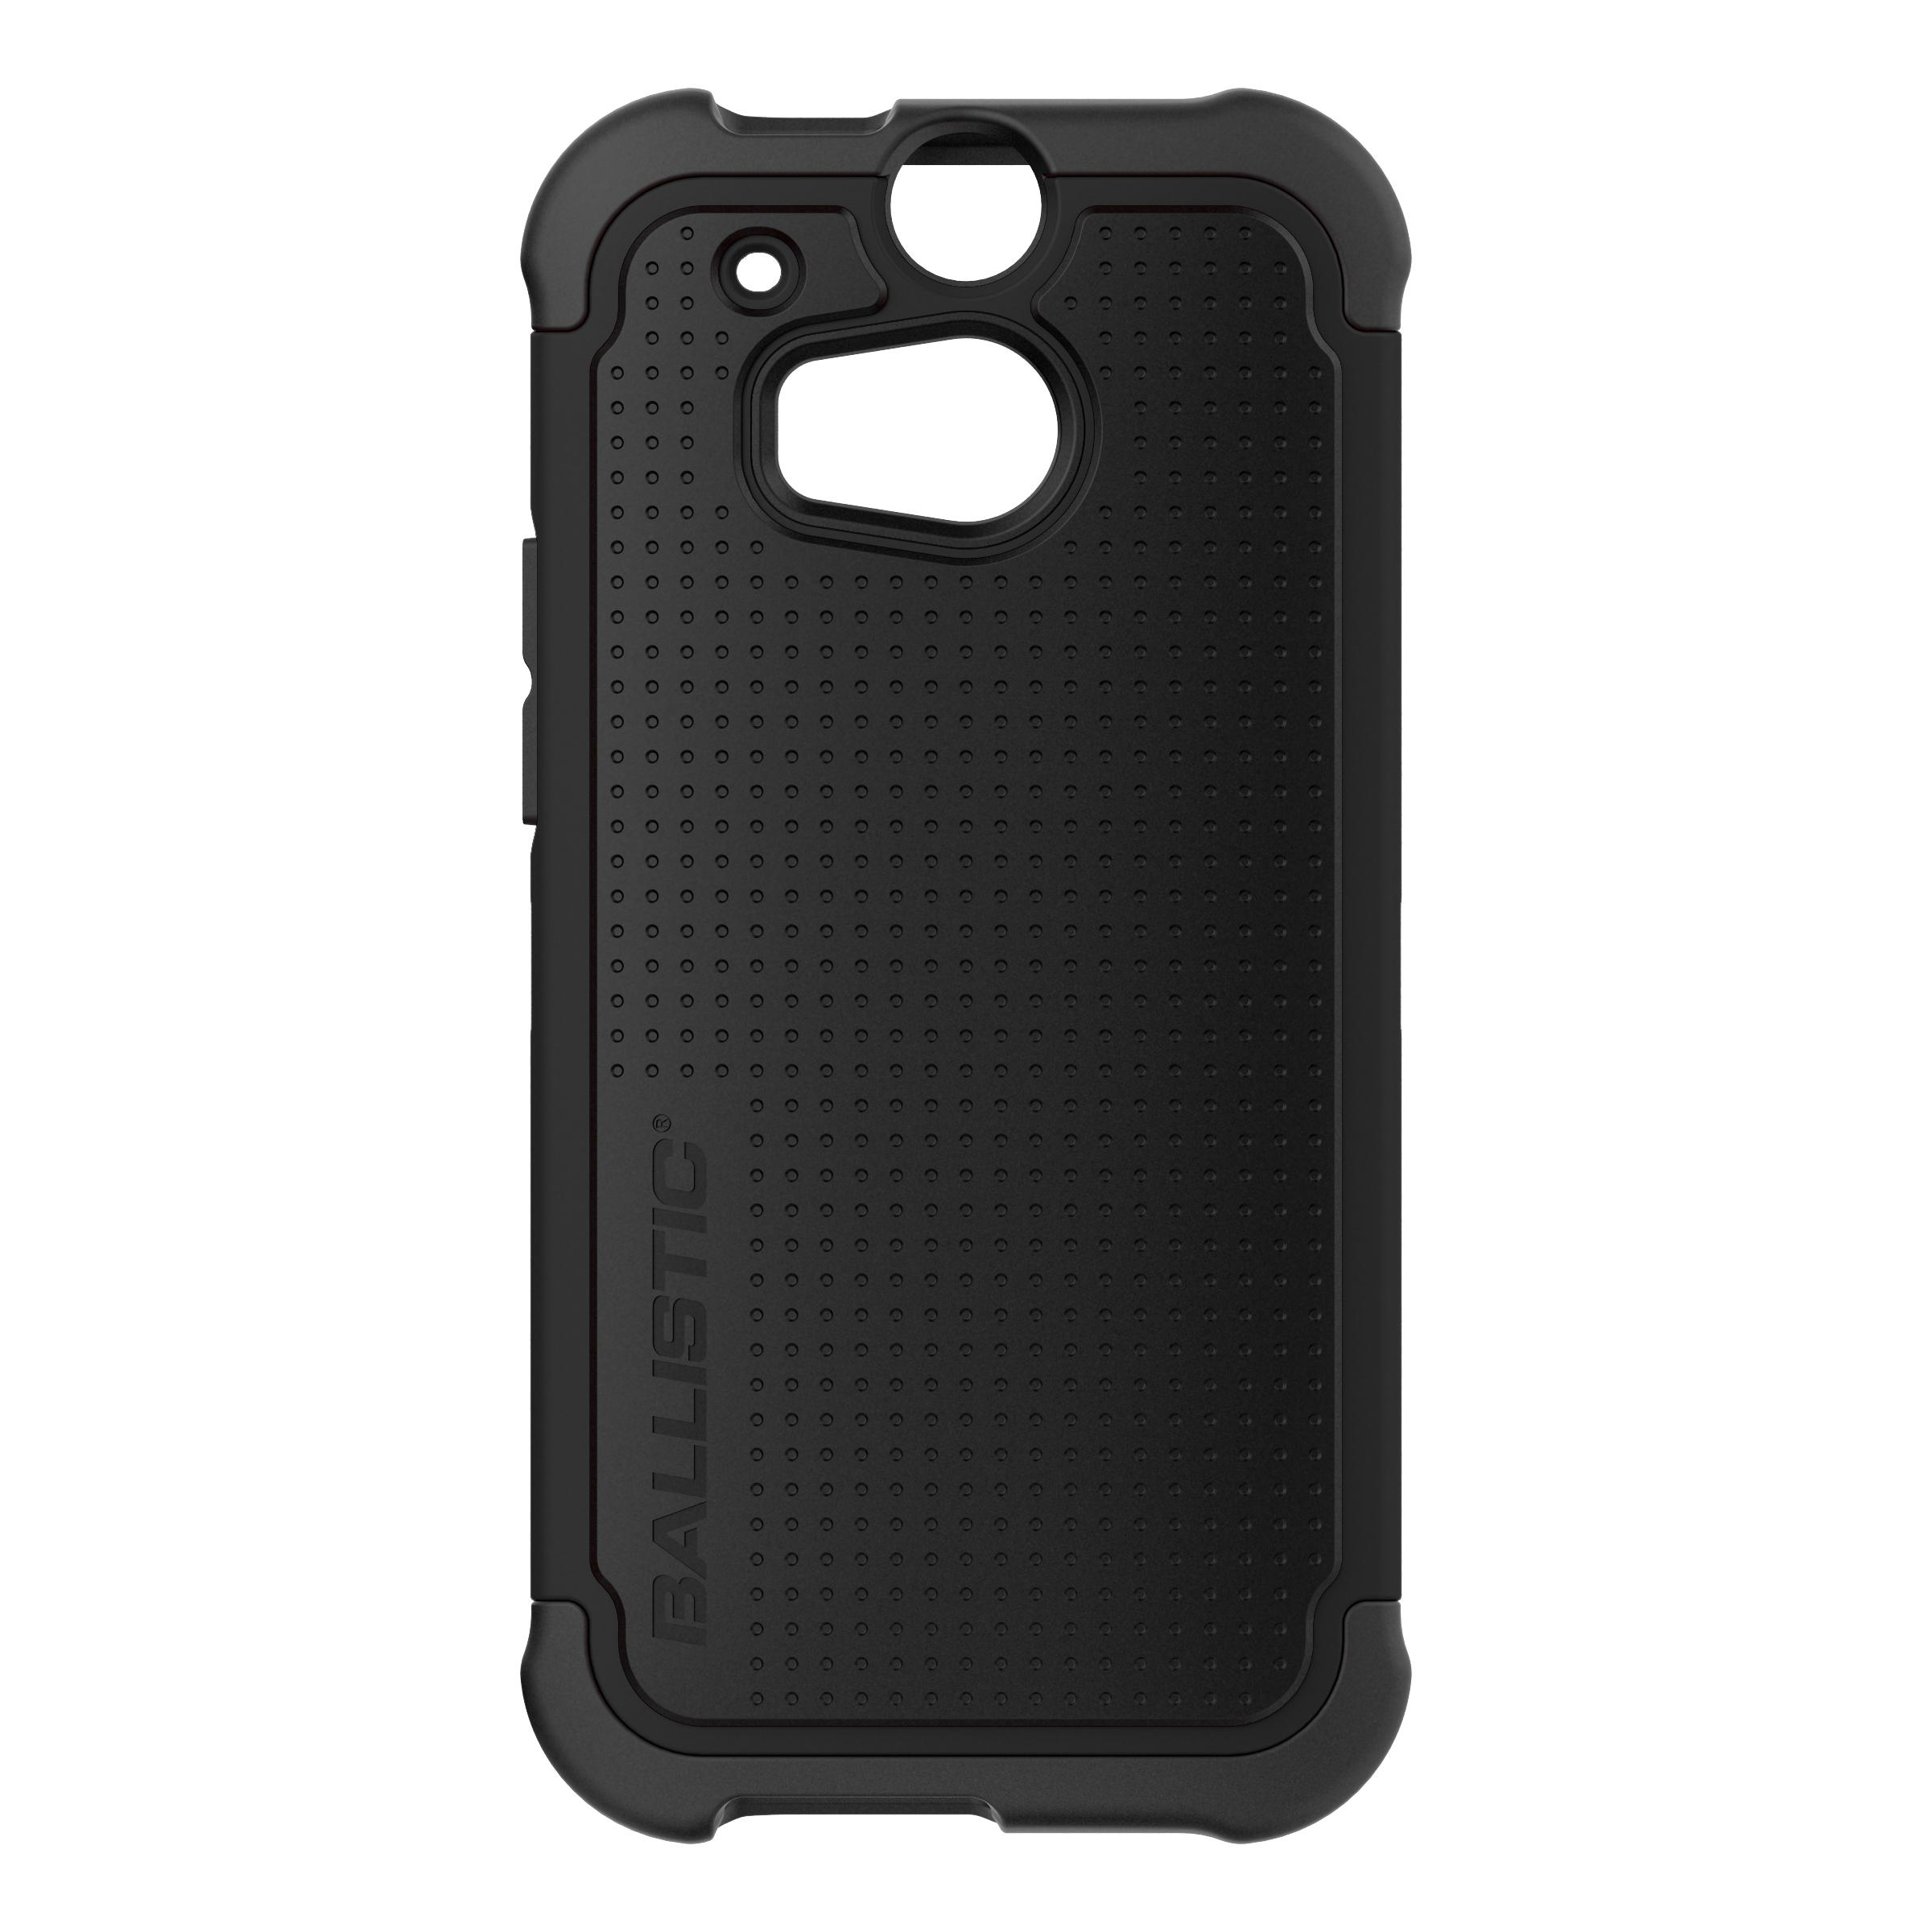 Ballistic Black Shell Gel (SG) Series Hard Case on Black Silicone for HTC One (M8) - SG1307-A065